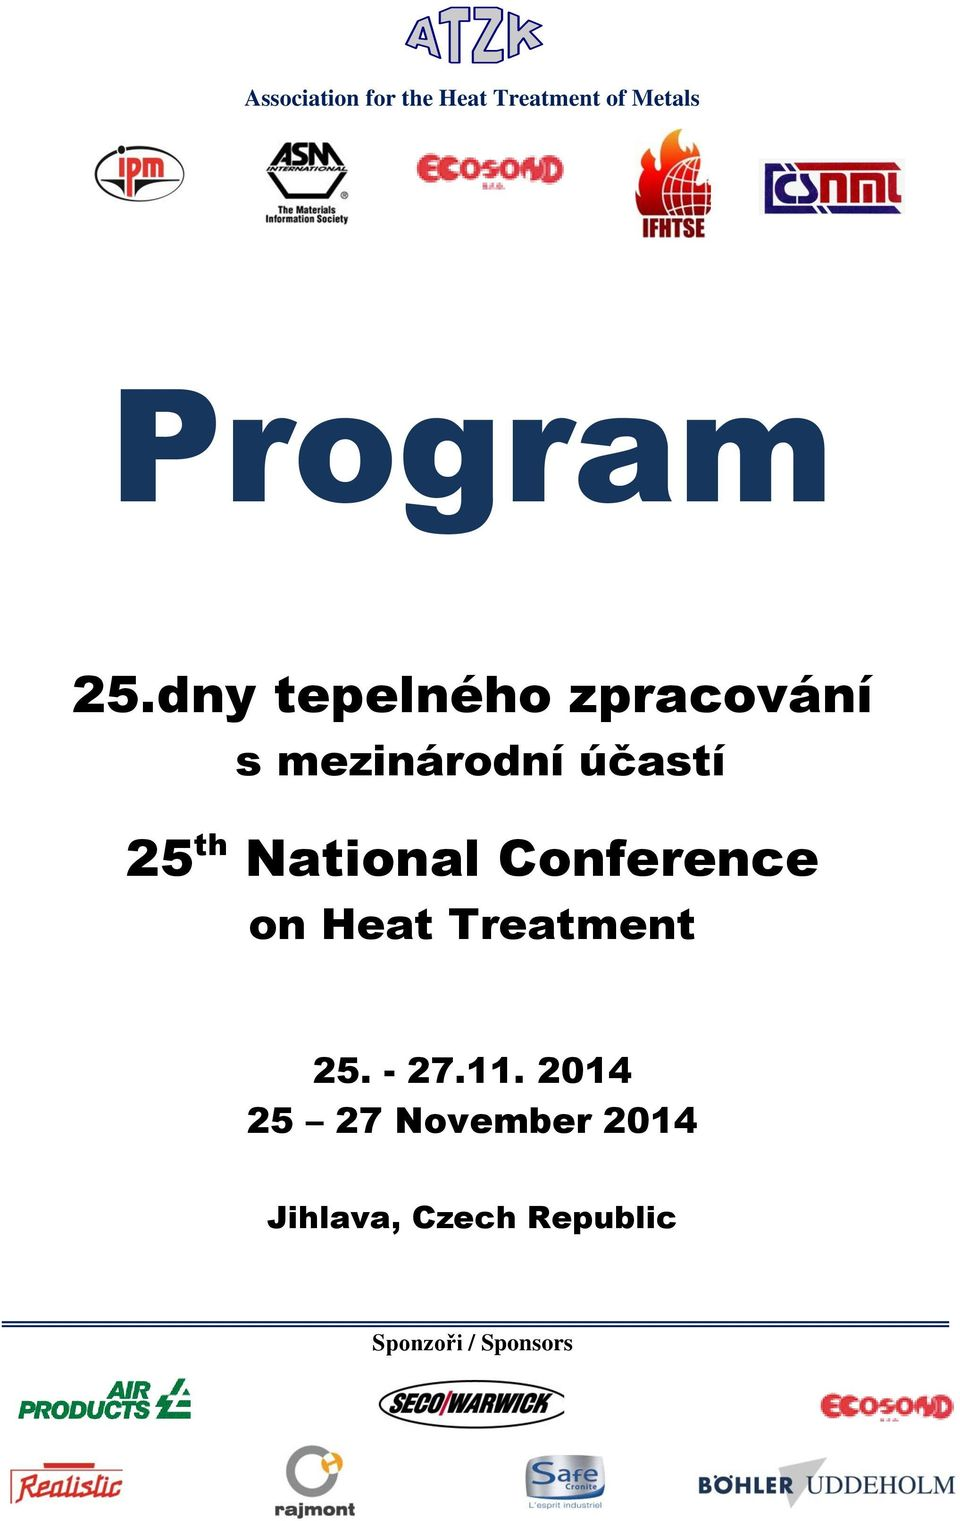 National Conference on Heat Treatment 25. - 27.11.